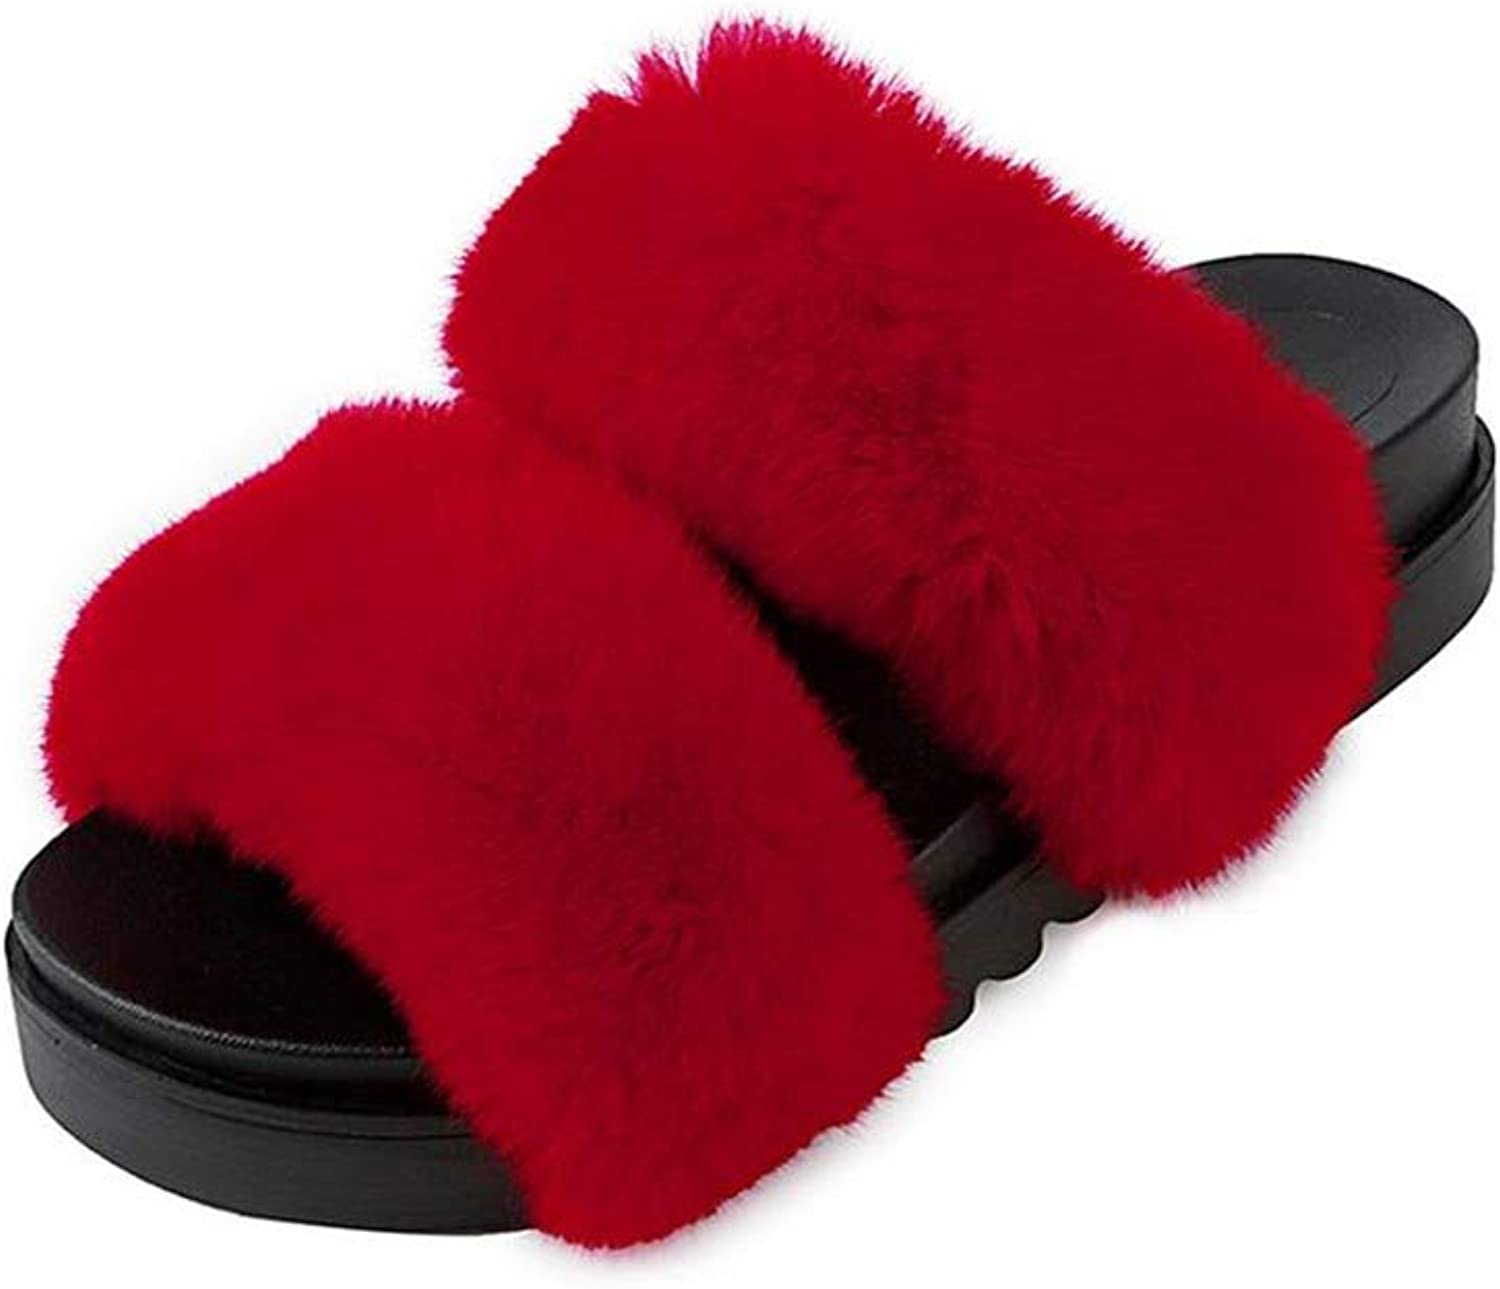 SUNNY Store Women's Slippers Comfort Cozy Slippers Cute Home House Slippers